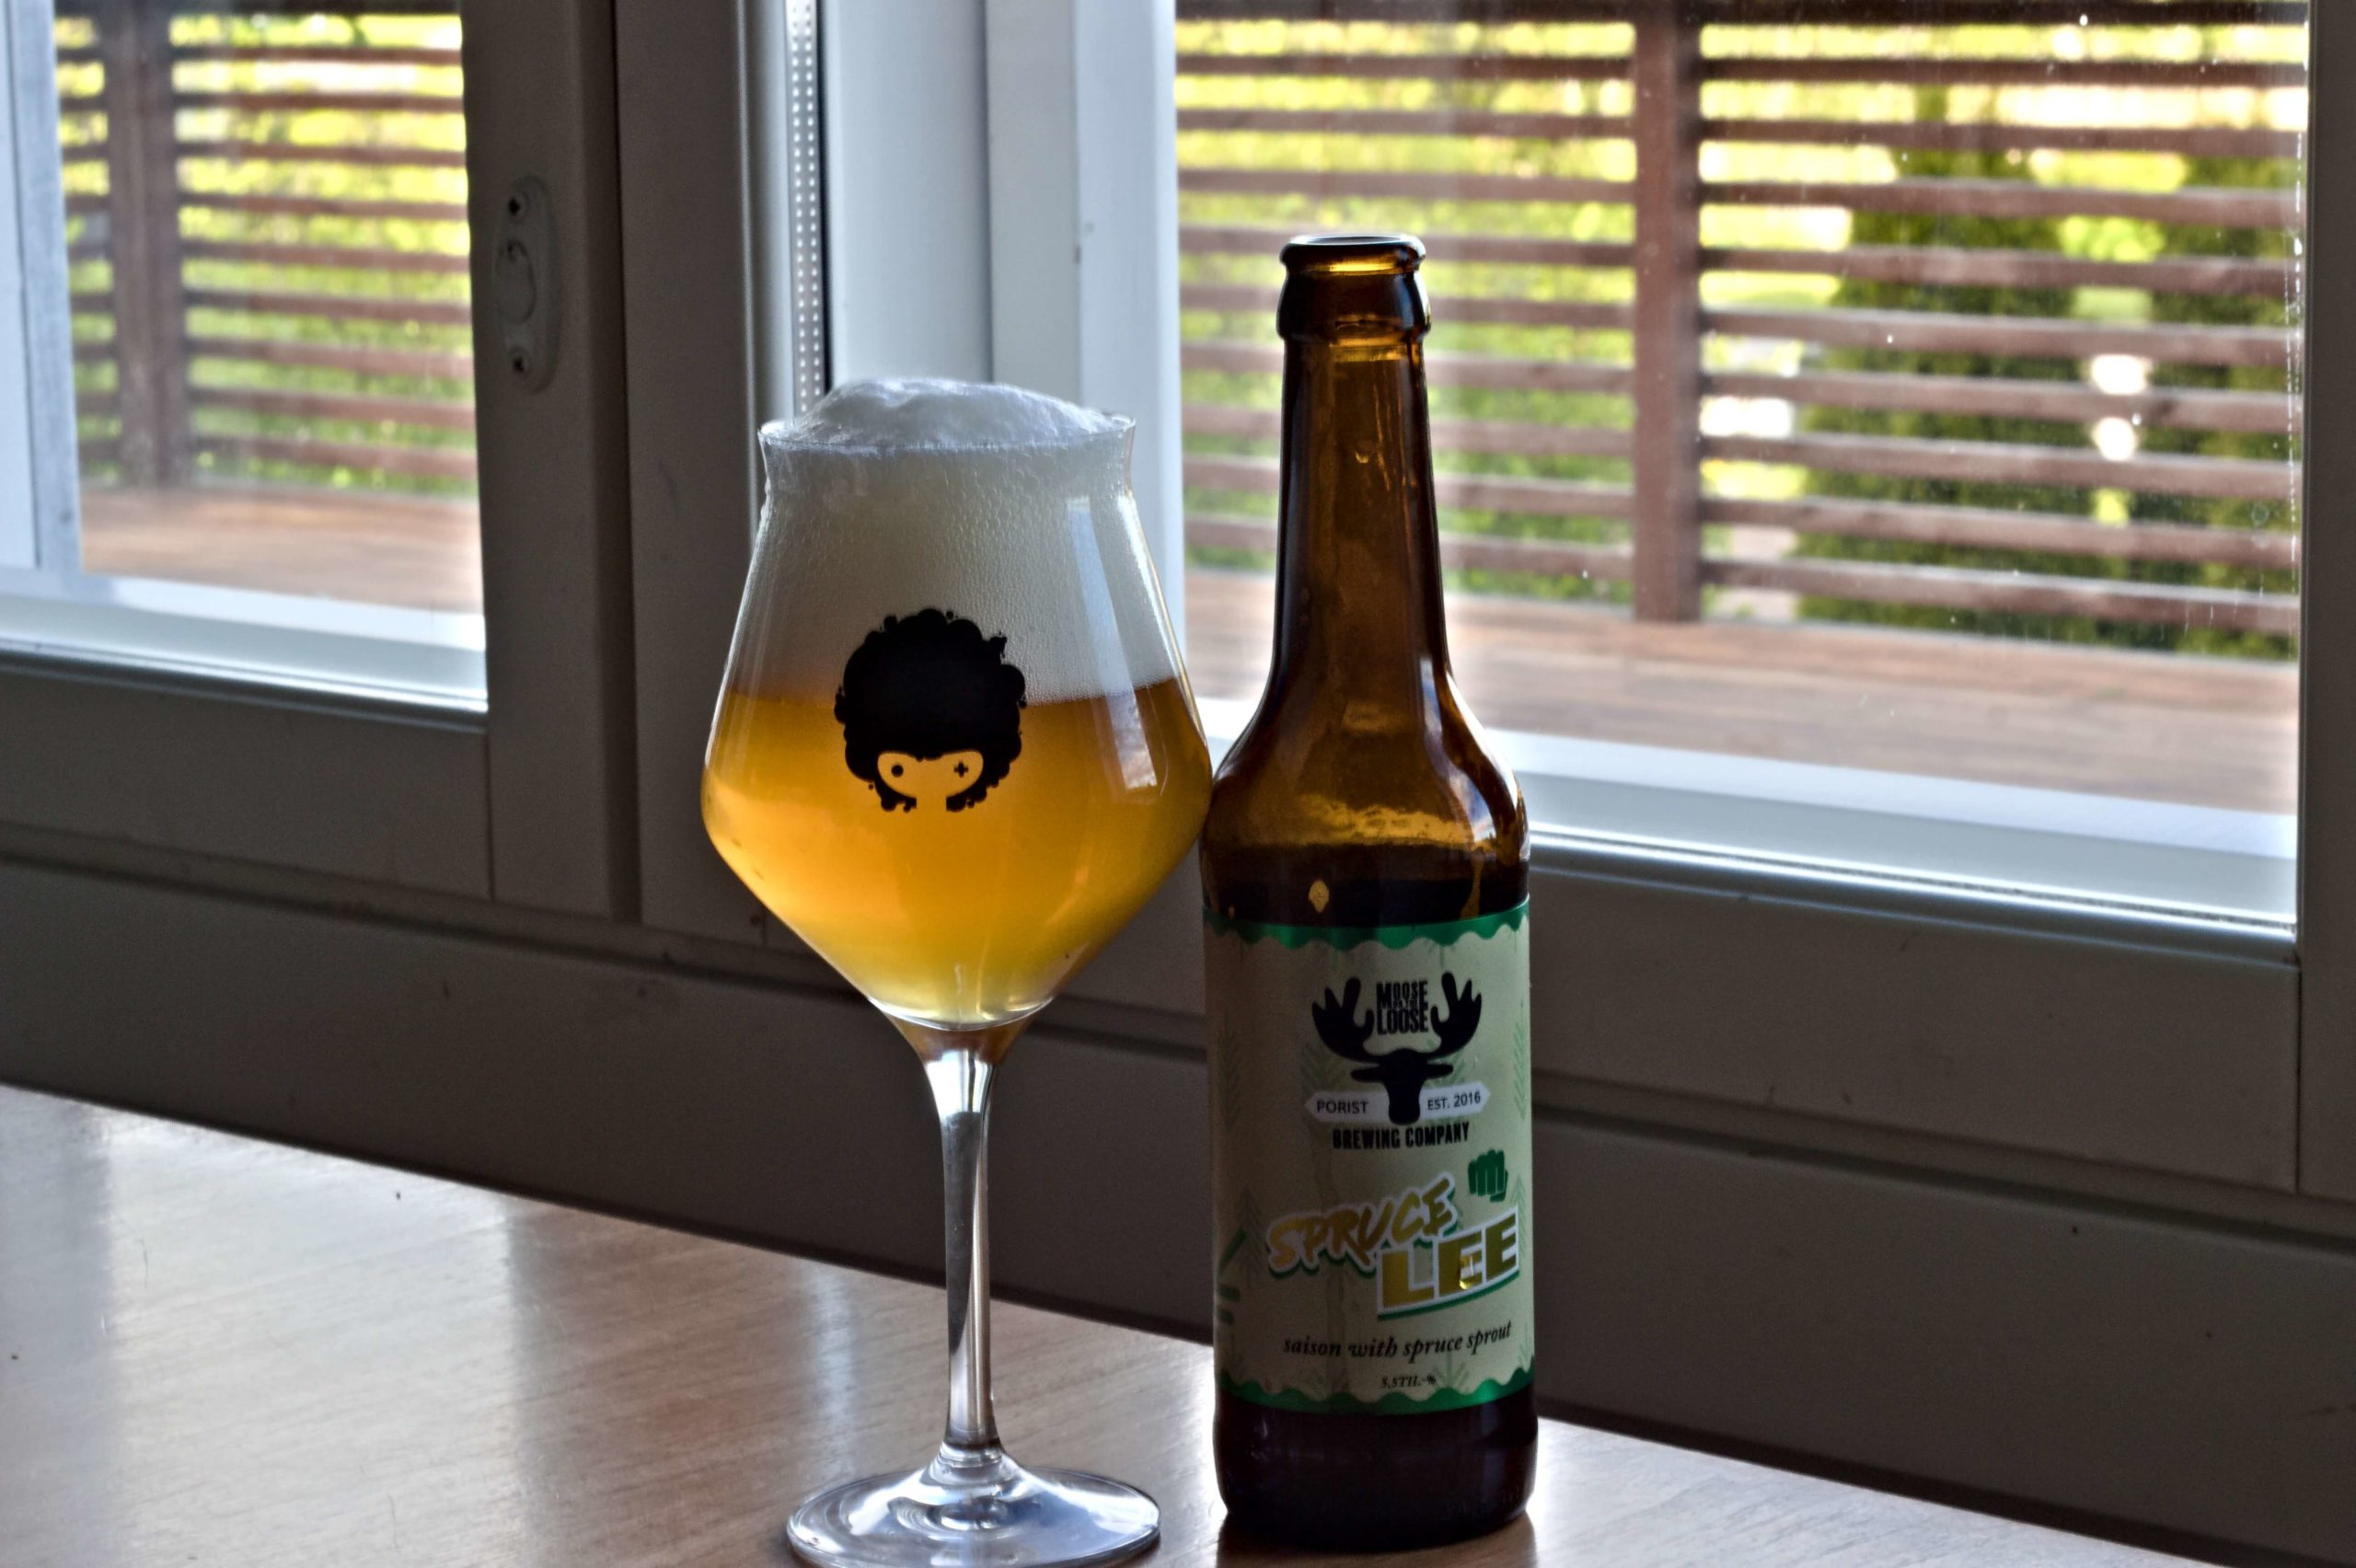 Moose On the Loose – Spruce Lee (Saison w/ Spruce tips)